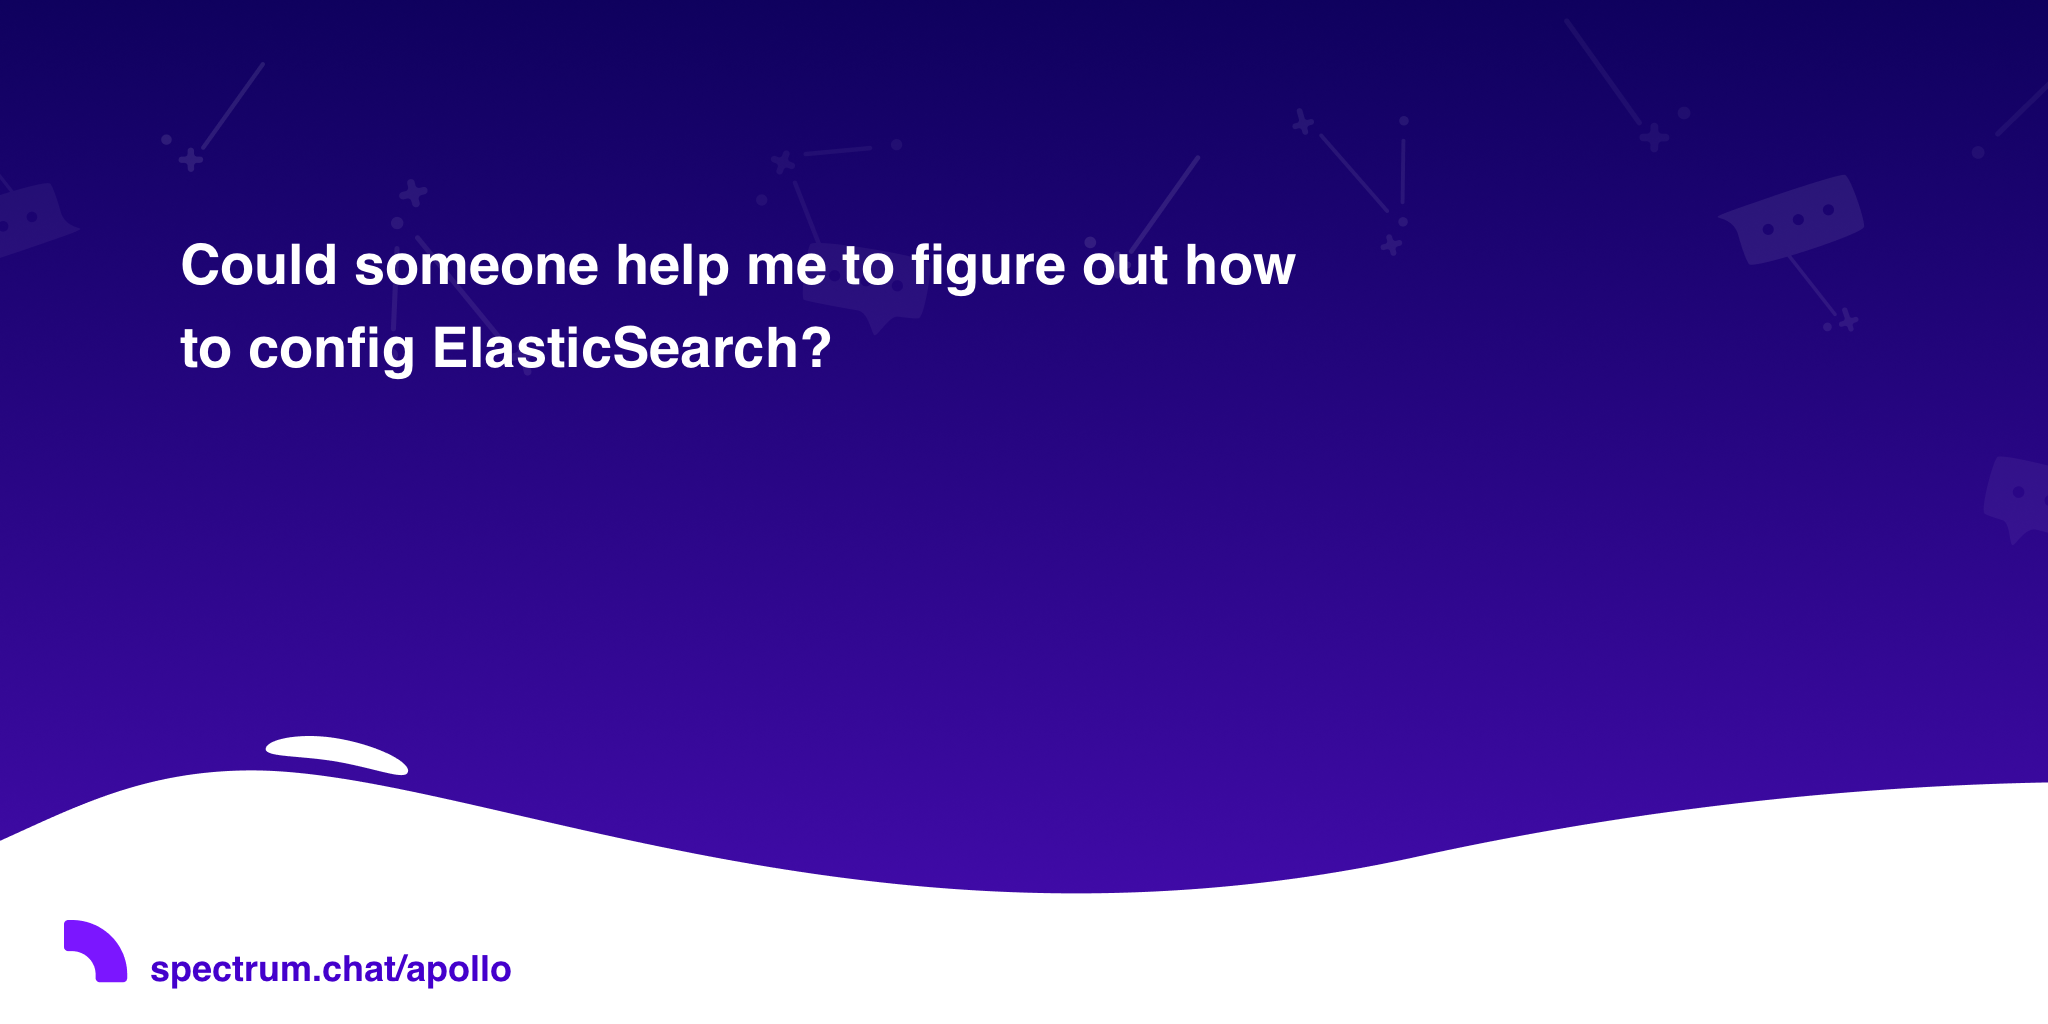 Could someone help me to figure out how to config ElasticSearch